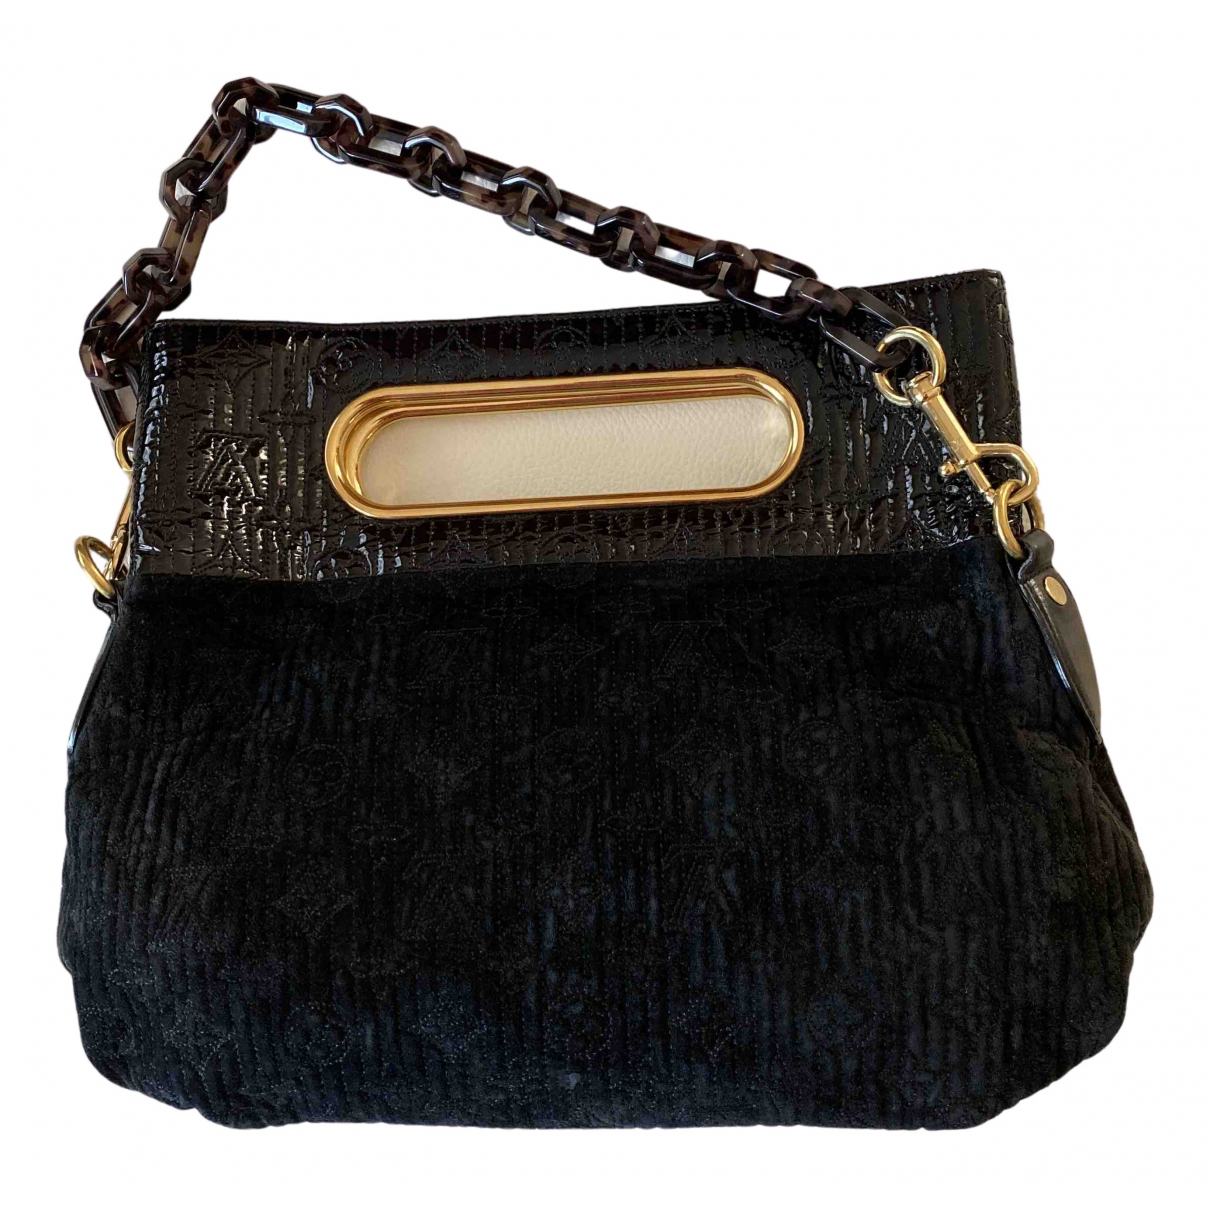 Louis Vuitton N Black Suede Clutch bag for Women N